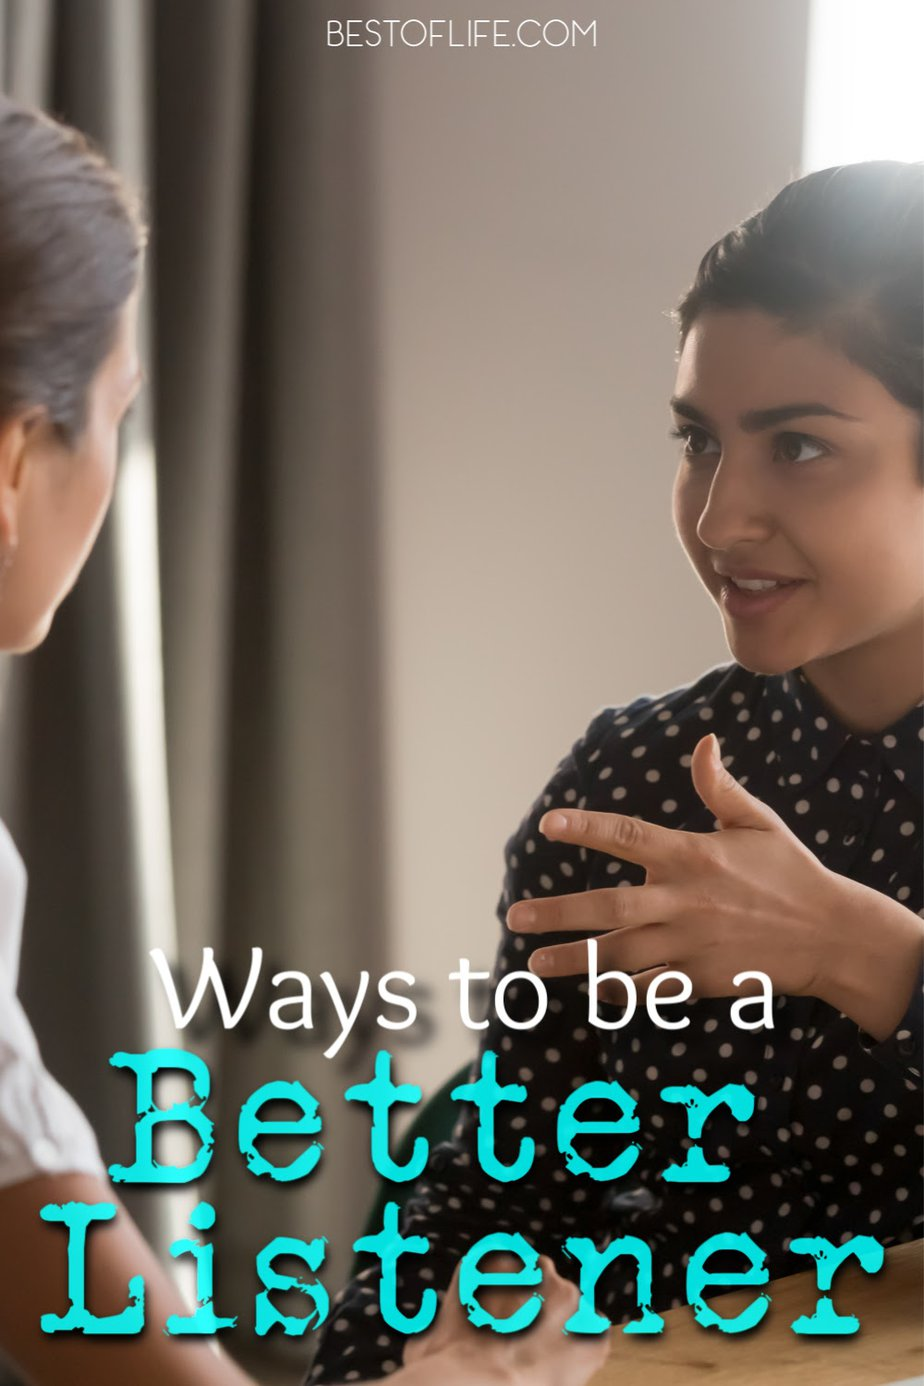 The best ways to be a better listener could help in many different aspects of life from romance to professional and everything in between. Lifehacks | Tips for Listening | Ideas for Listening | Ways to Pay More Attention #life #hacks via @thebestoflife